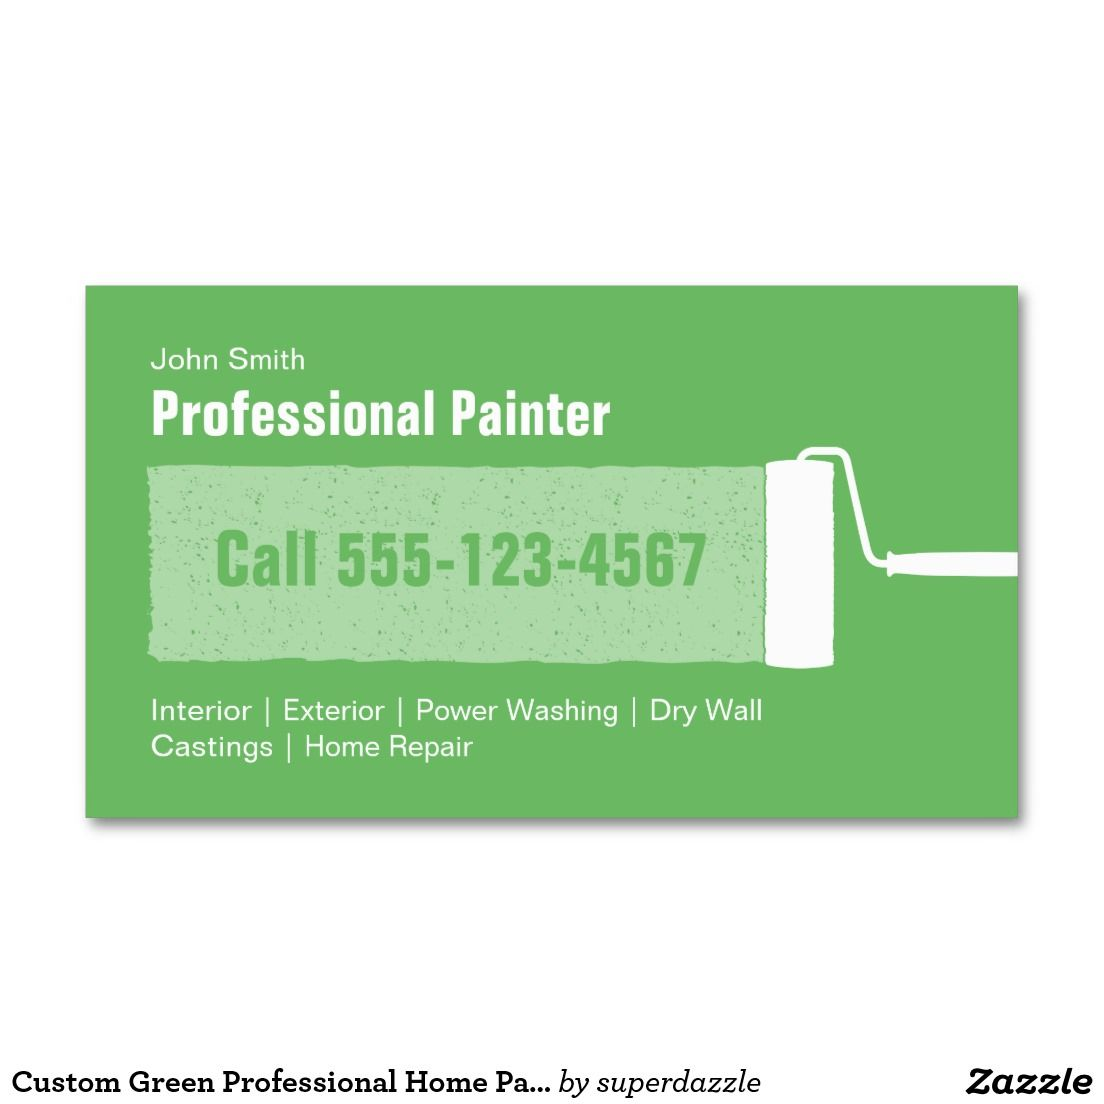 Custom Grey Professional Home Painting Business Card Template